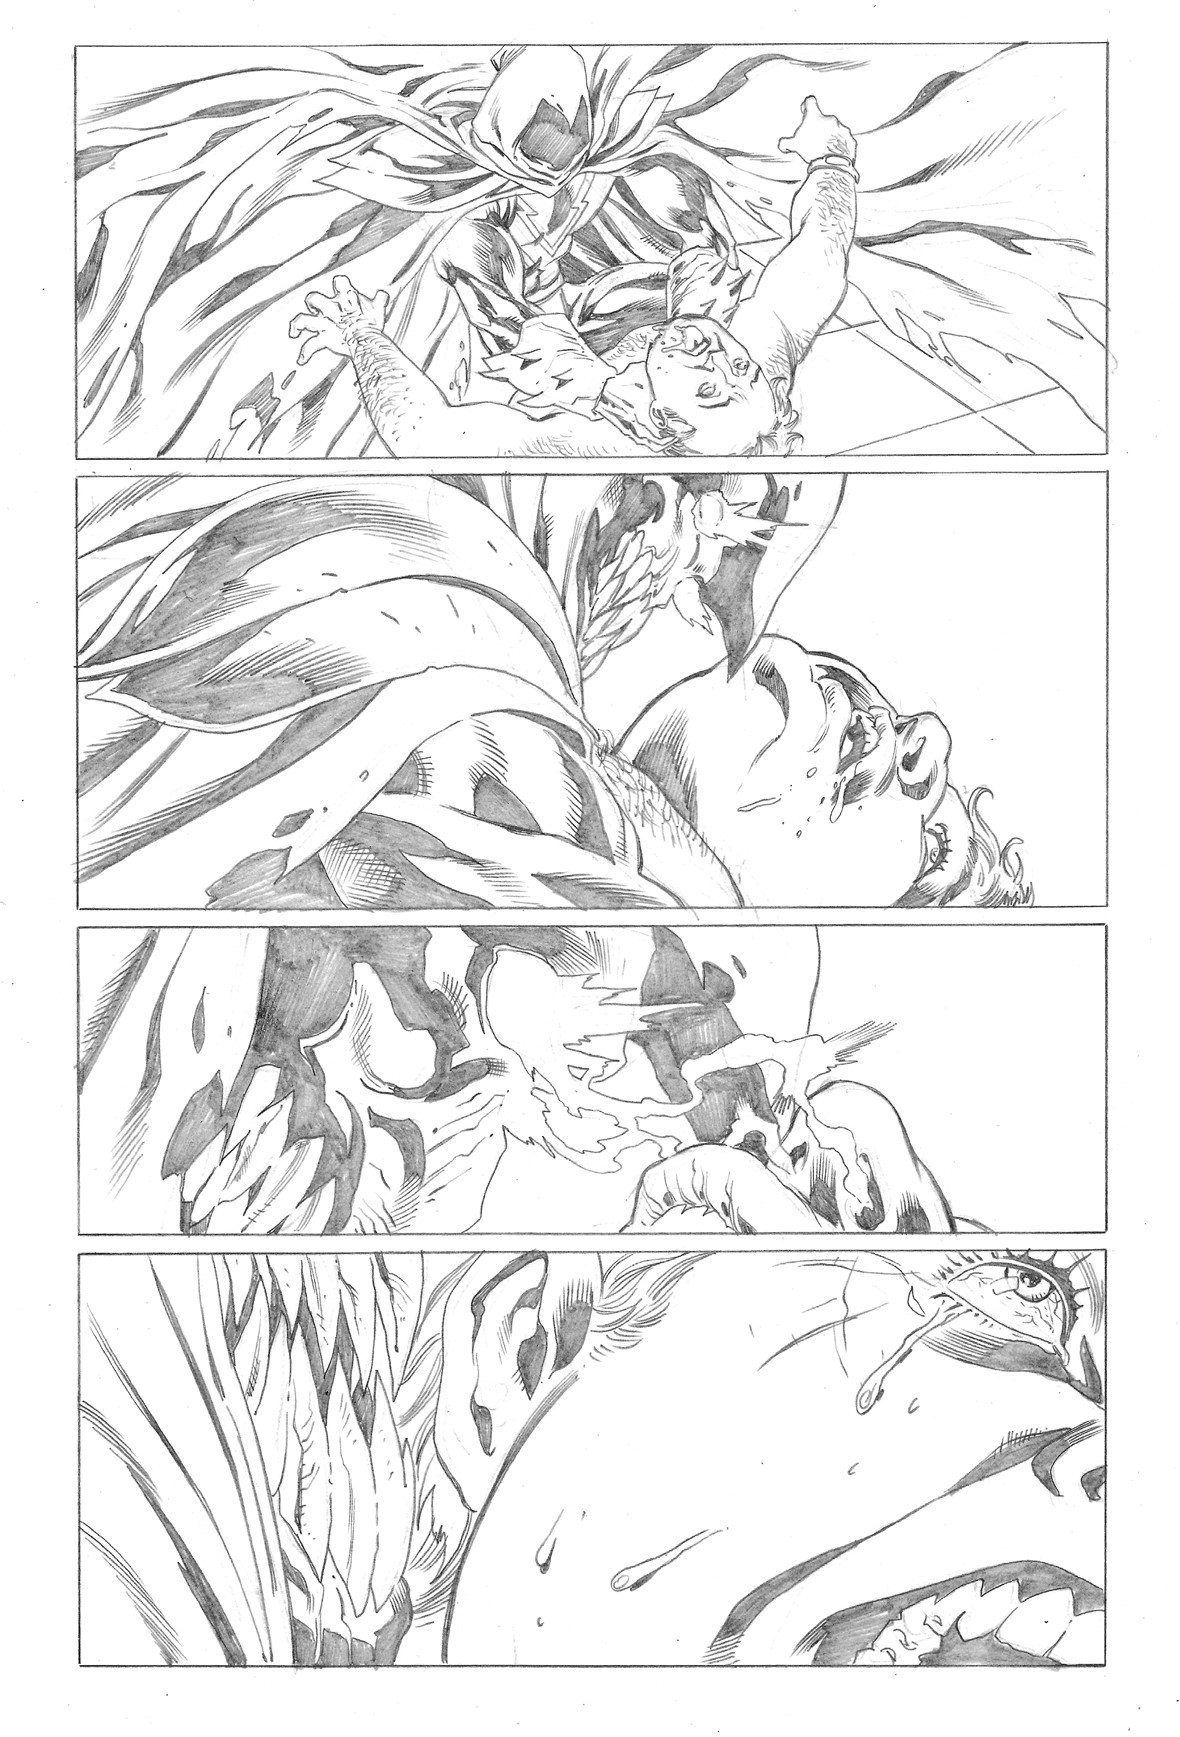 Pencils by Ronilson Freire.